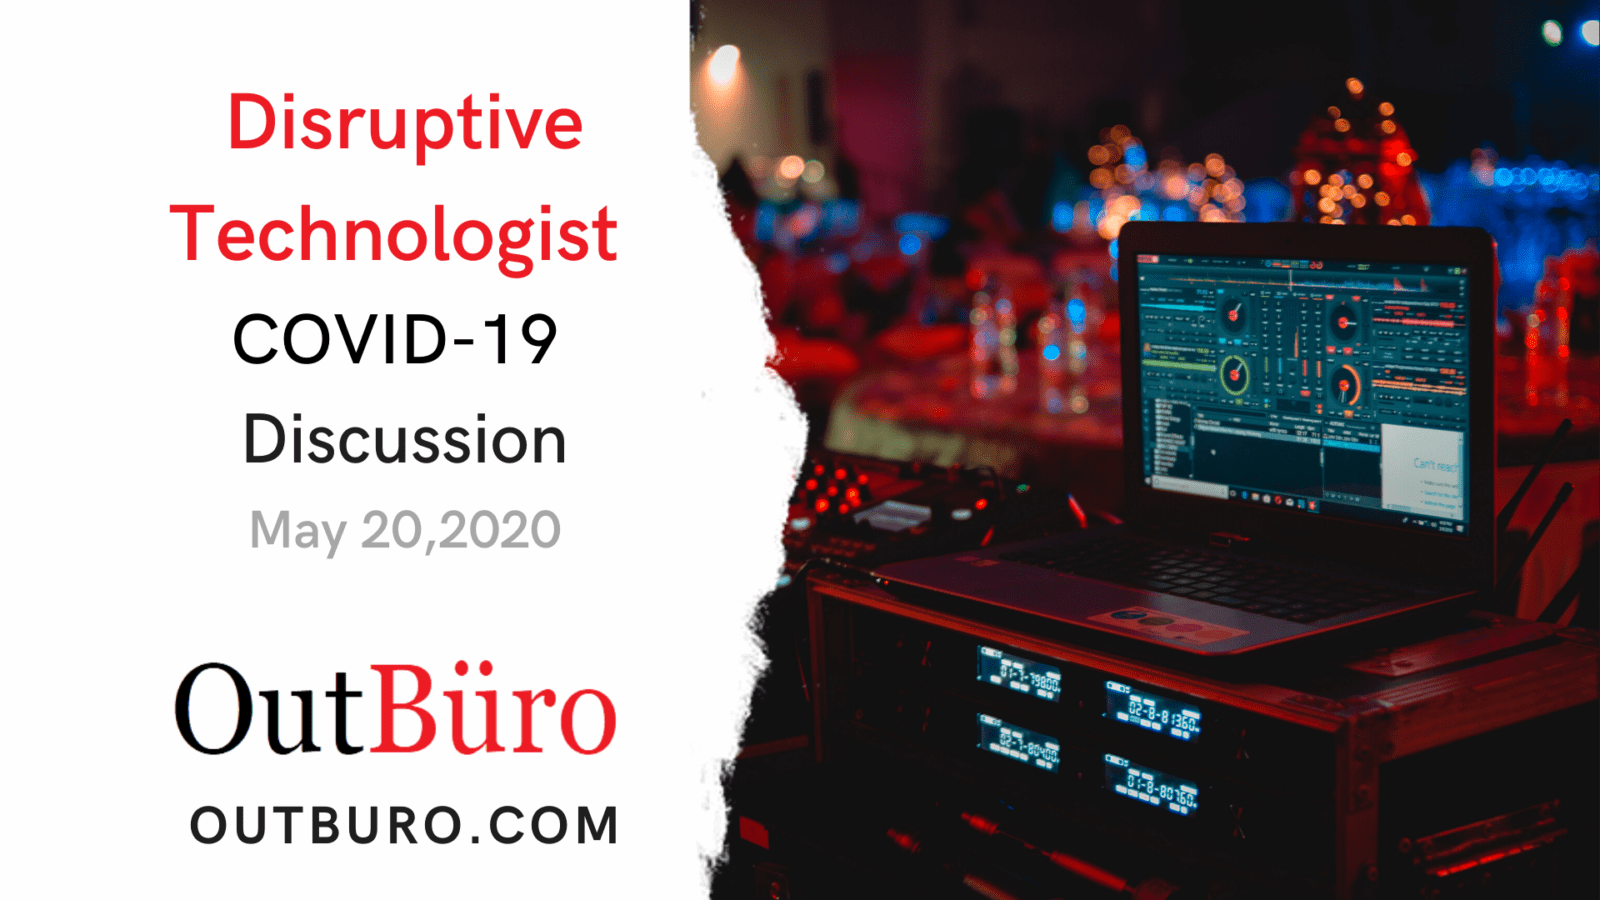 Disruptive Technologist May 20, 2020 COVID-19 Technology Discussion - OutBuro Dennis Velco with LGBTQ Perspective LGBT Entrpreneur Technology Professional Community Gay Lesbian